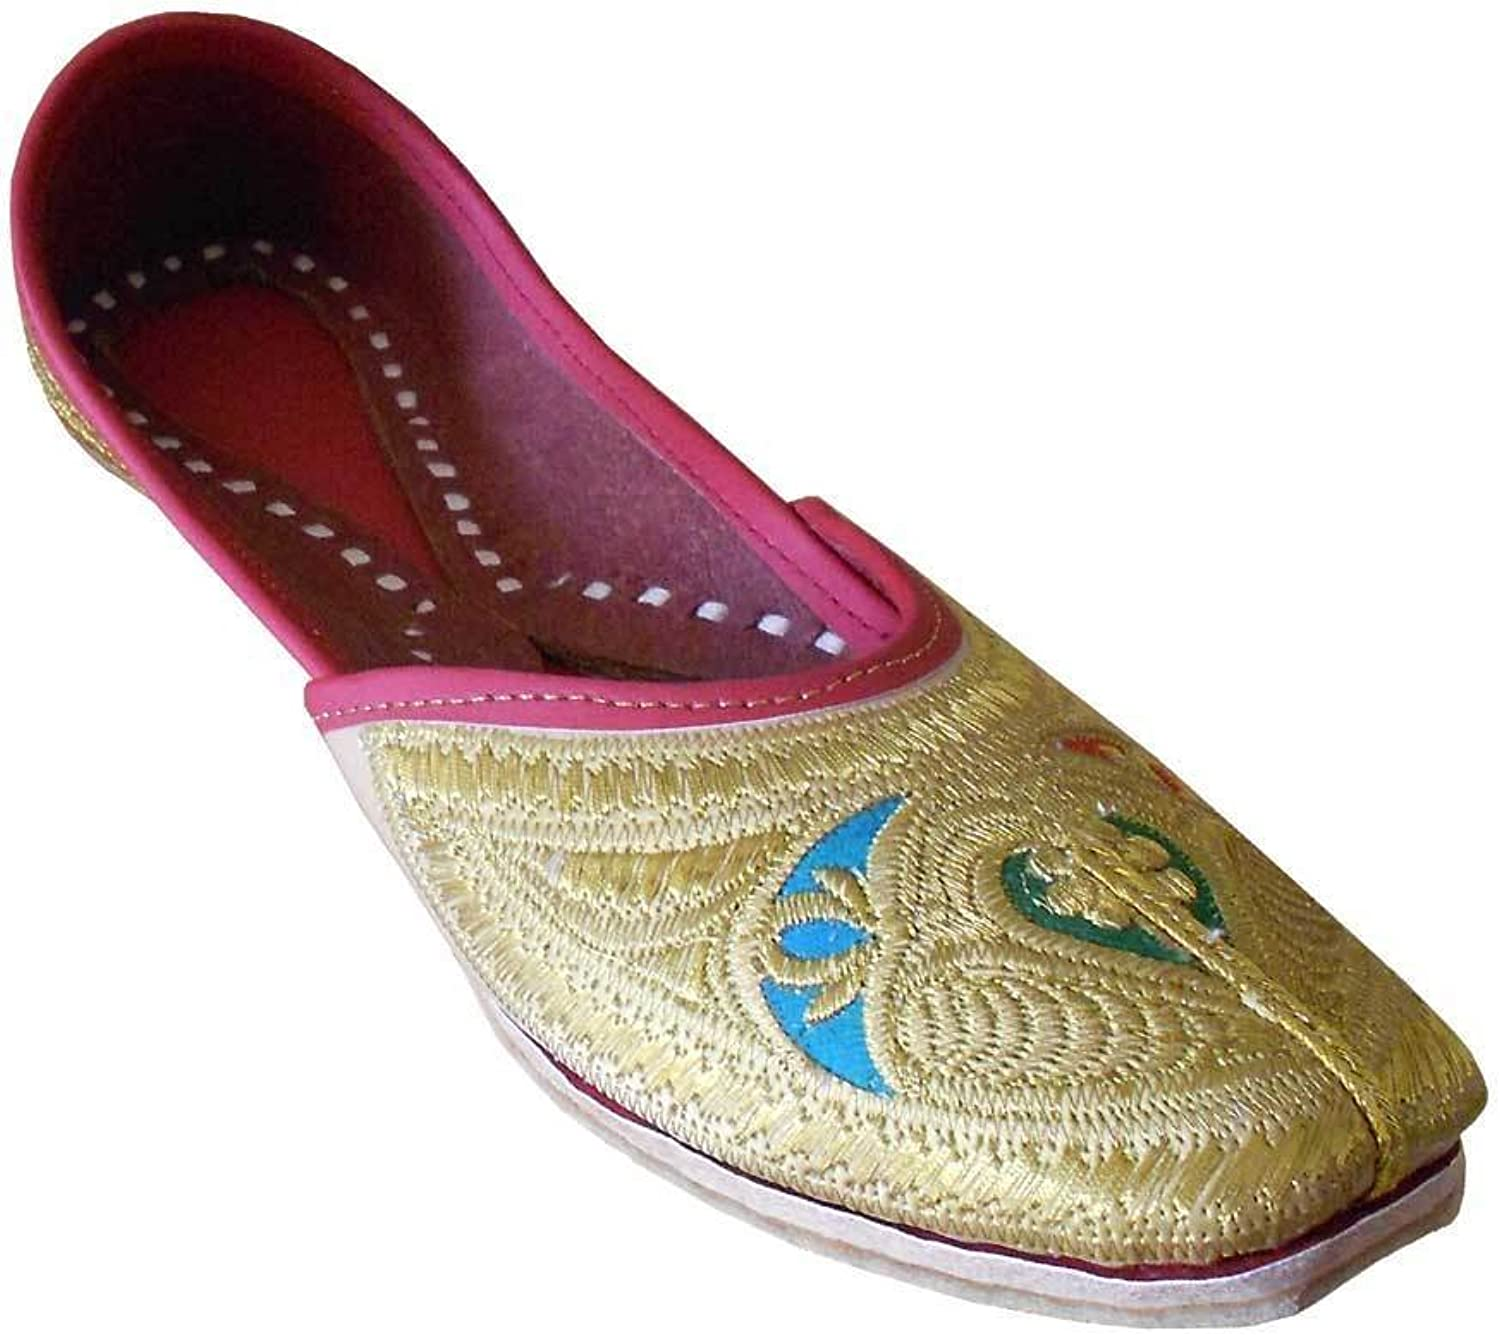 Kalra Creations Women's Traditonal Indian Faux Leather with Embroidery Groom shoes